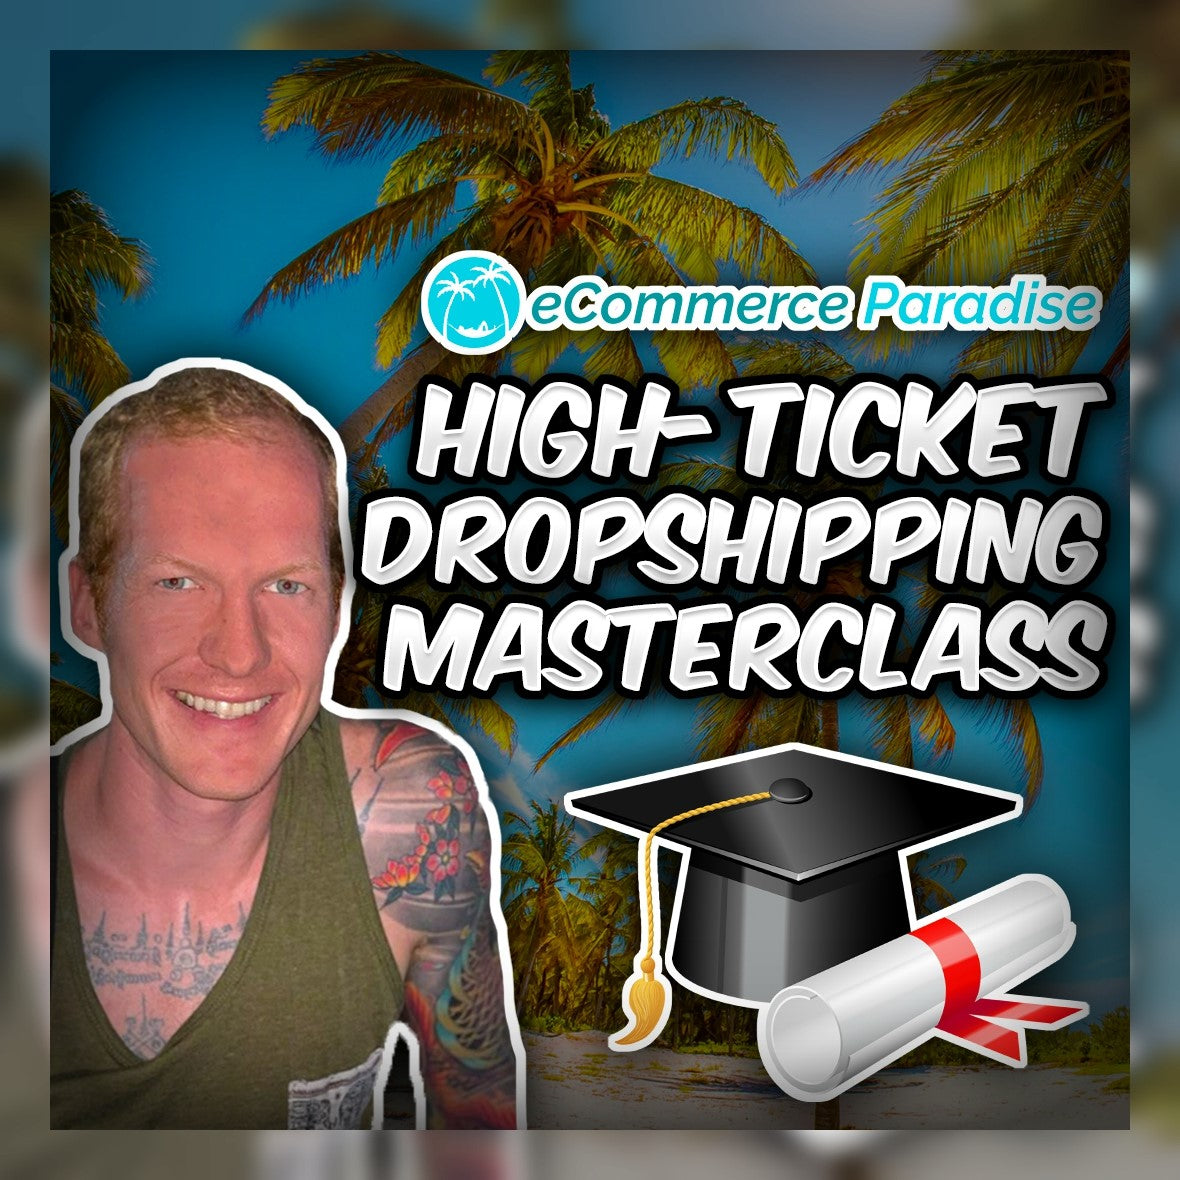 Top 10 Best Dropshipping Products for High-Ticket Drop